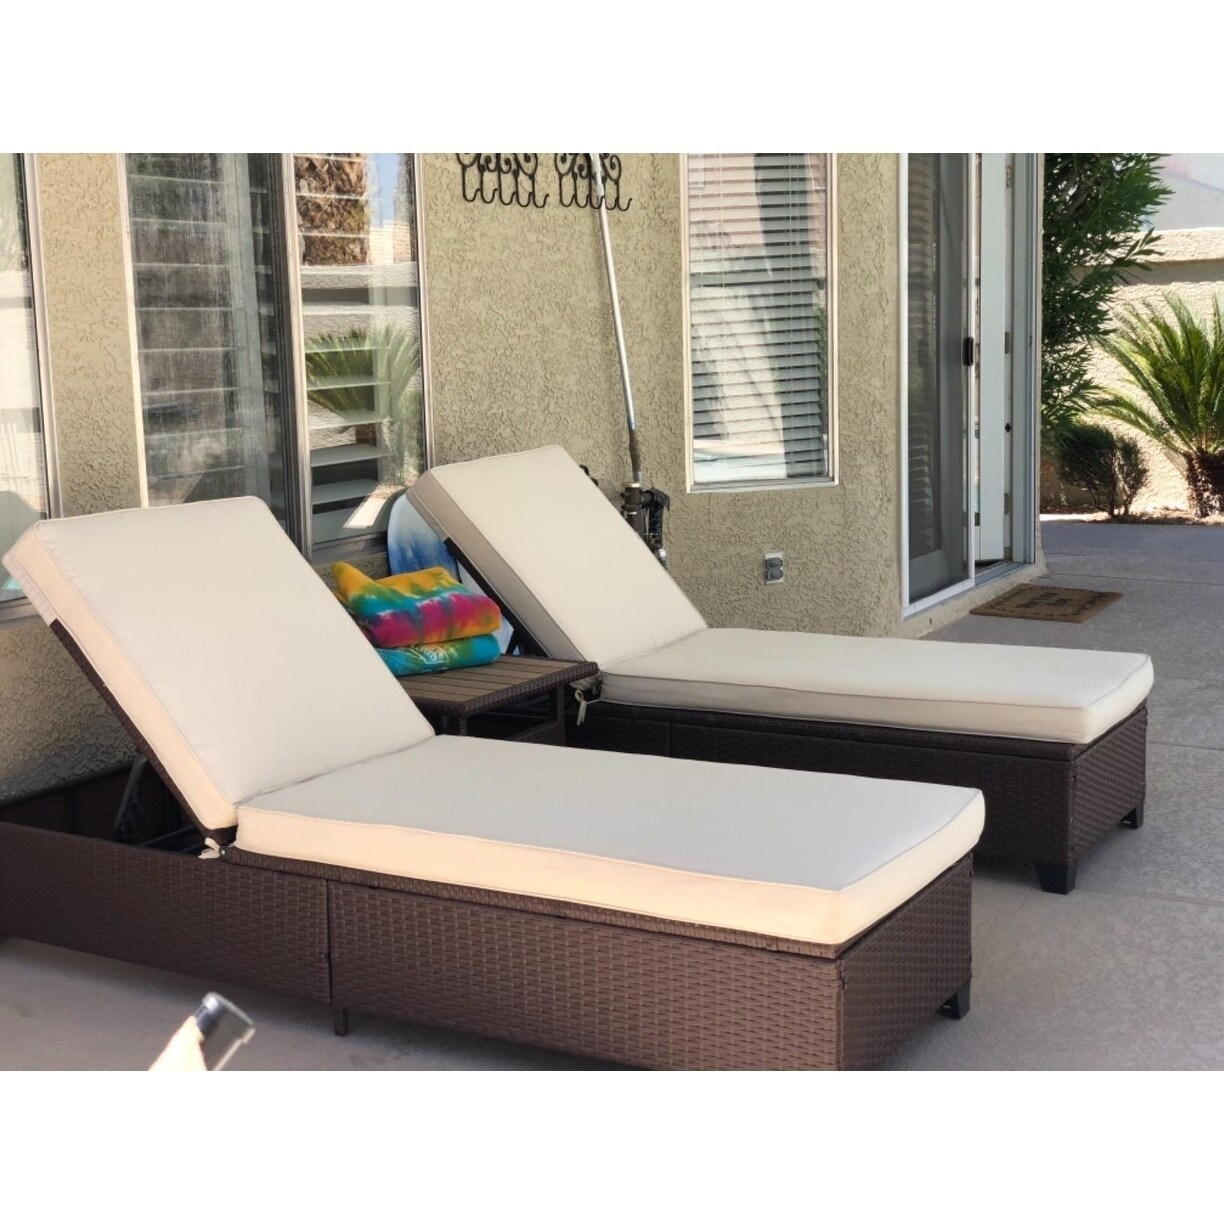 Lounge Chair Patio 3 Pc Outdoor Rattan Chaise Lounge Chair Patio Pe Wicker Rattan Furniture Adjustable Garden Pool Lounge Chairs And Table